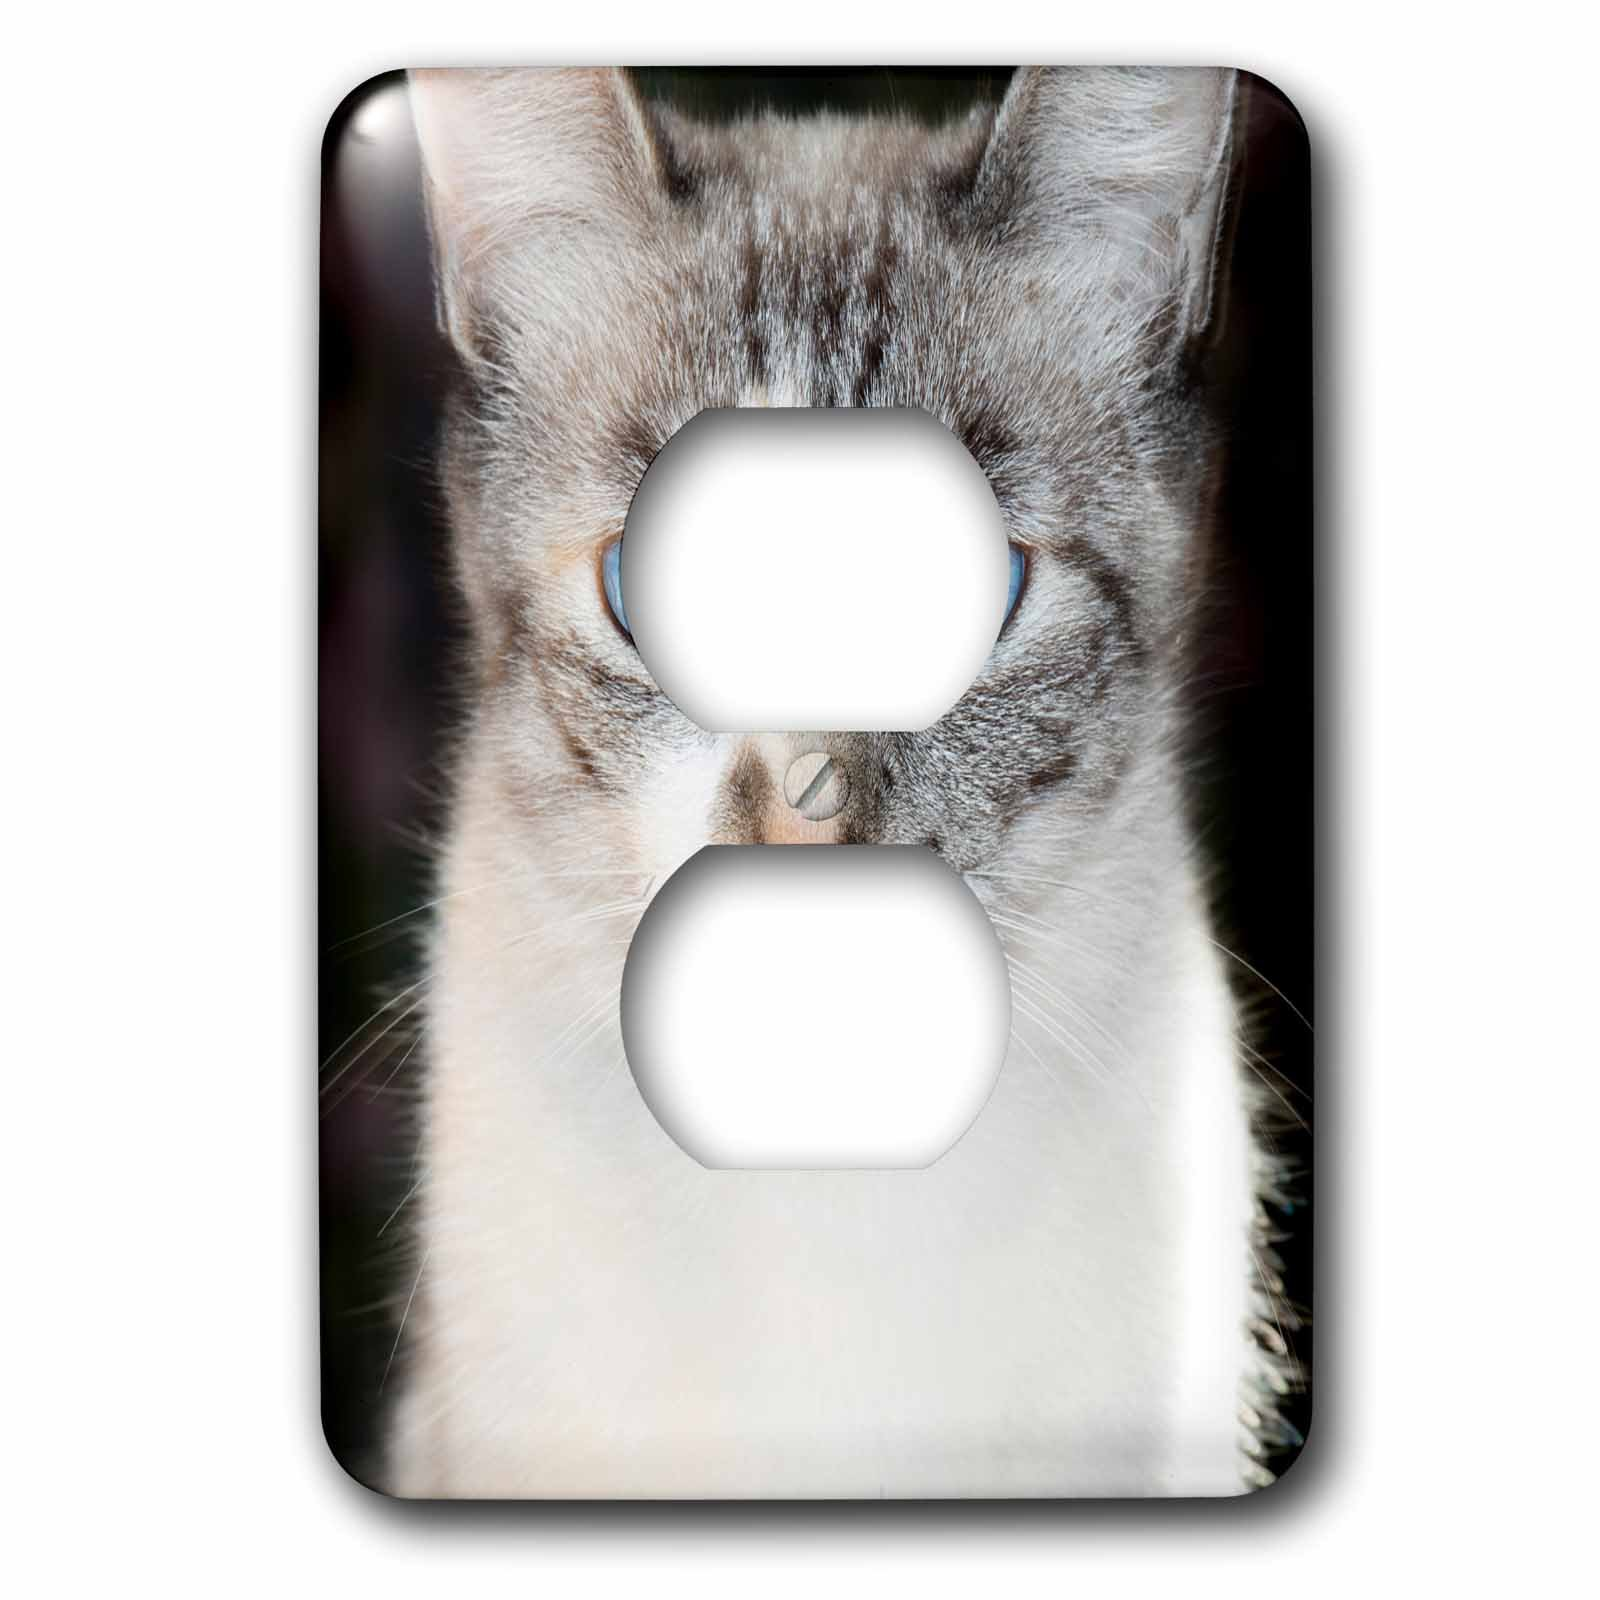 3dRose Danita Delimont - Cats - USA, California. Lynx point Siamese cat portrait. - Light Switch Covers - 2 plug outlet cover (lsp_278512_6)